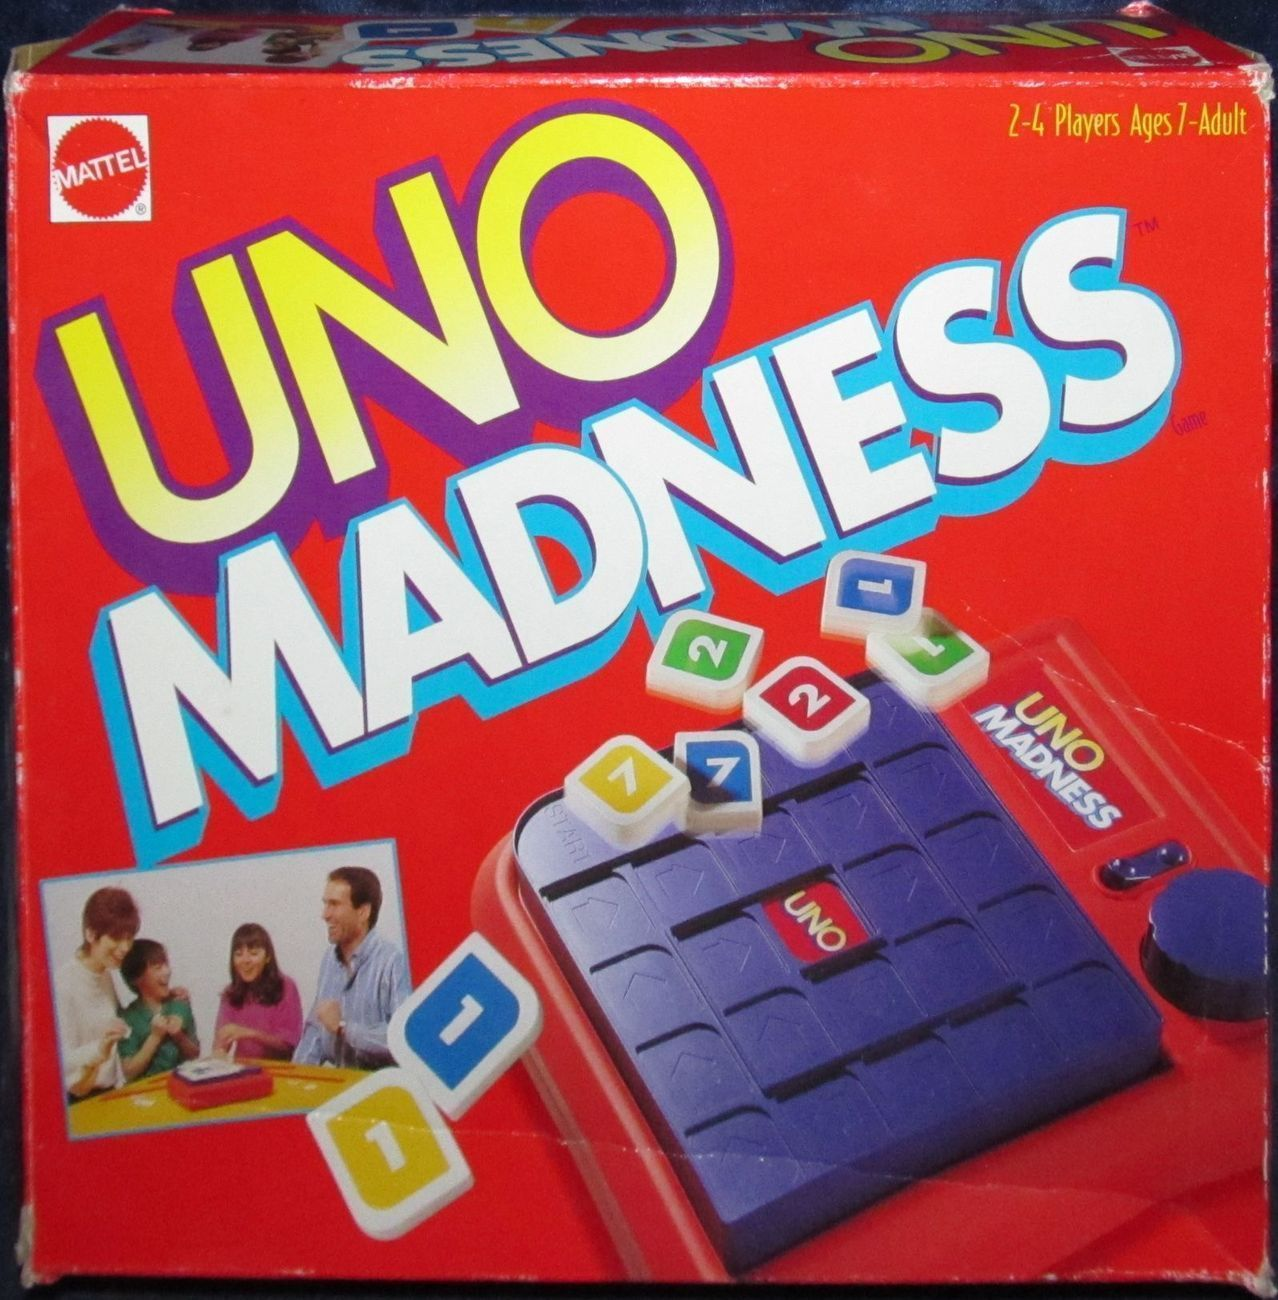 Uno Madness This is Uno on steroids. Played like the